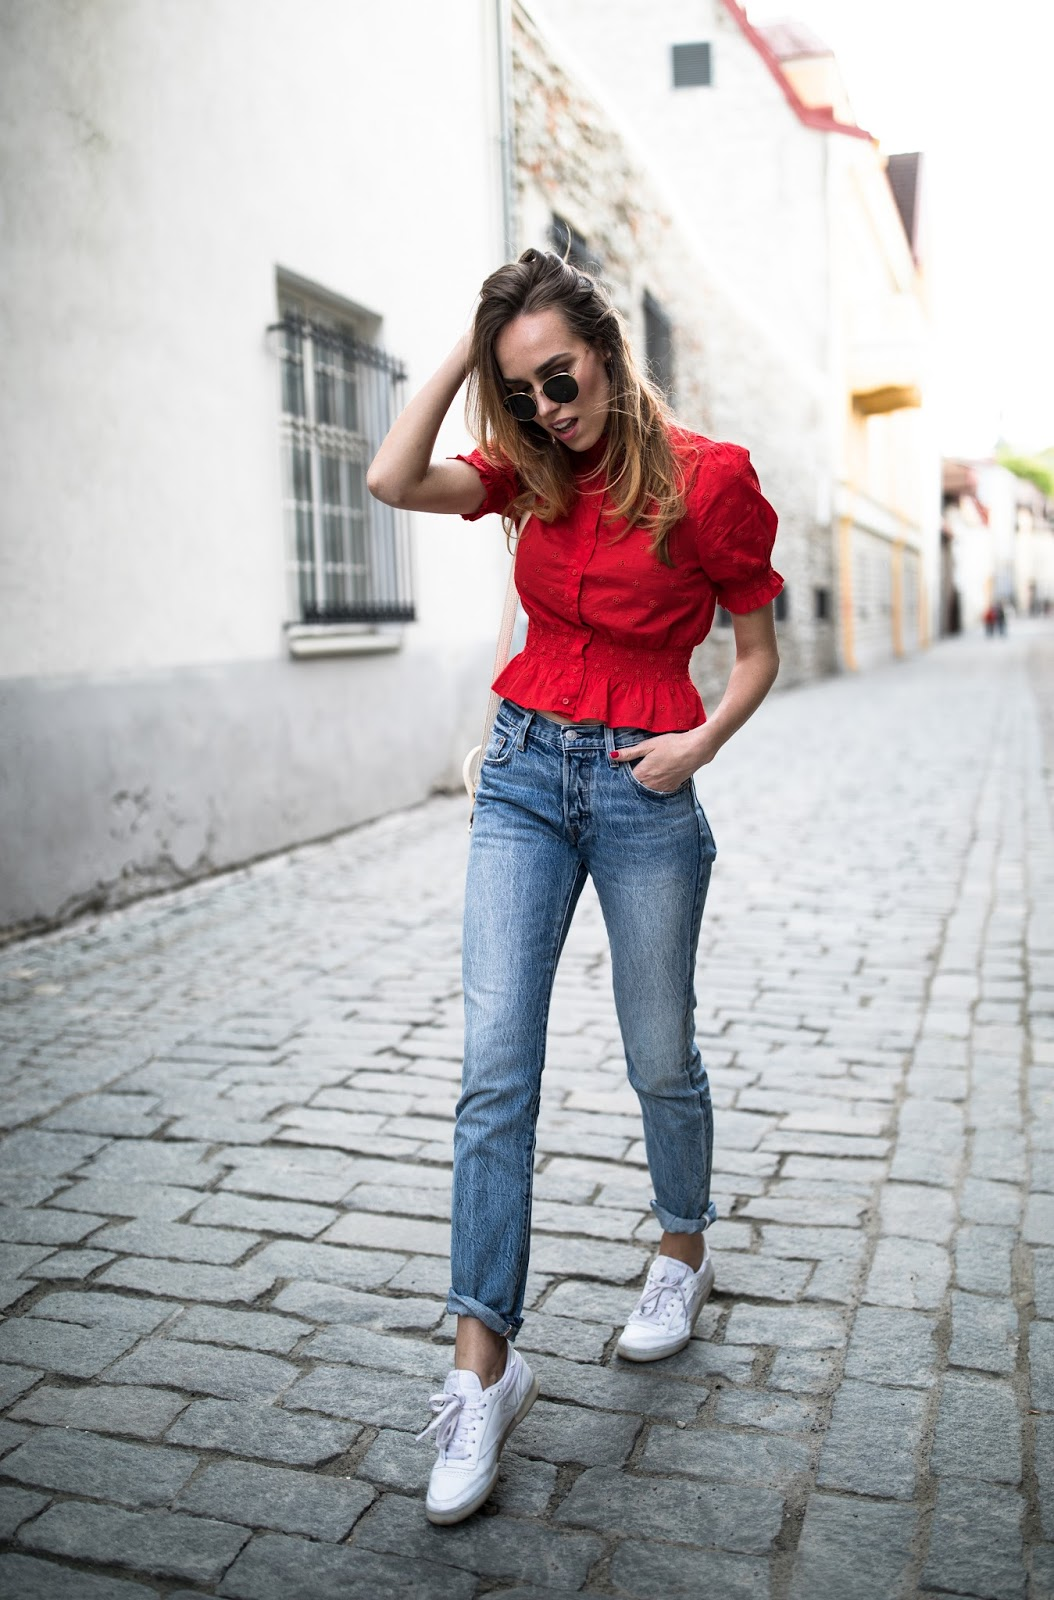 kristjaana red top blue jeans sneakers summer outfit